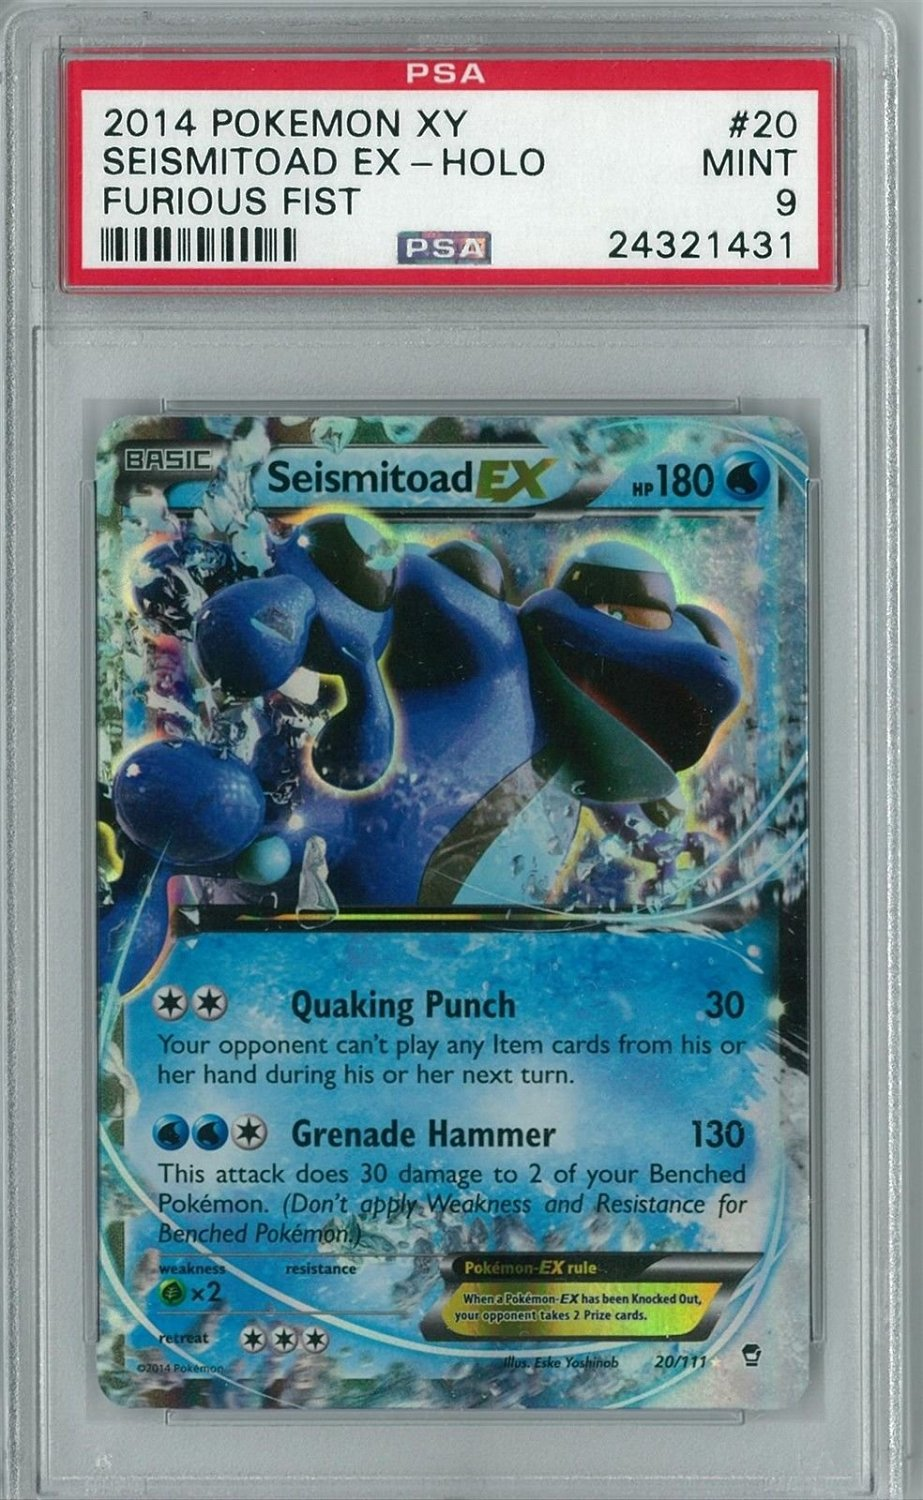 (Ship from USA) Pokemon XY Furious Fists Seismitoad EX 20/111 Holo Rare PSA 9 /ITEM#H3NG UE-EW23D159684